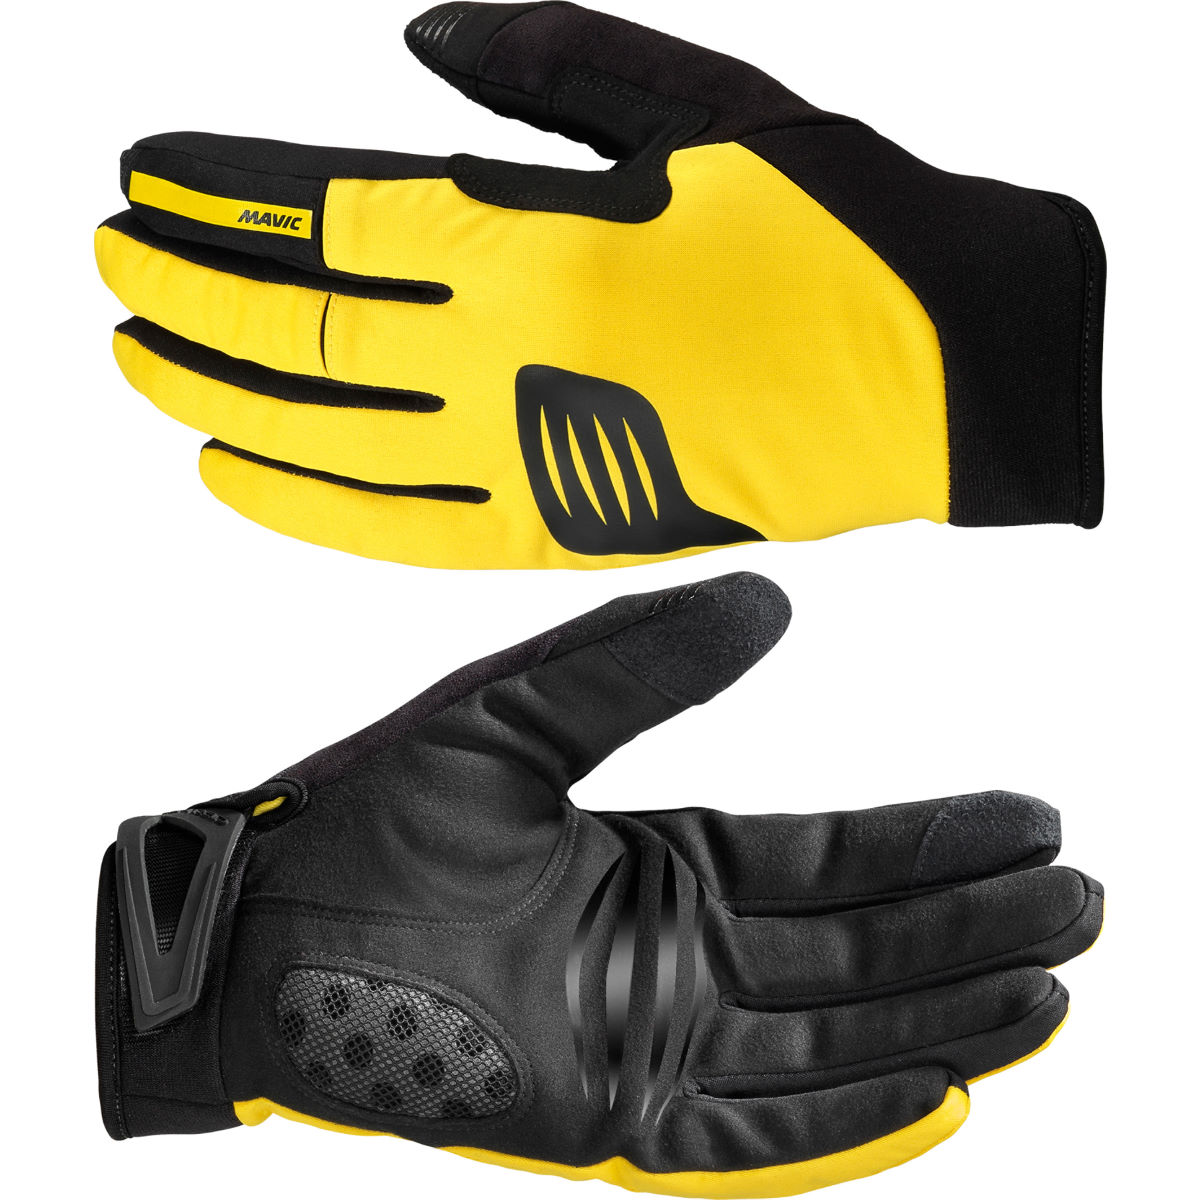 Gants Mavic Crossmax Thermo - XS Black - Yellow Mavic Gants